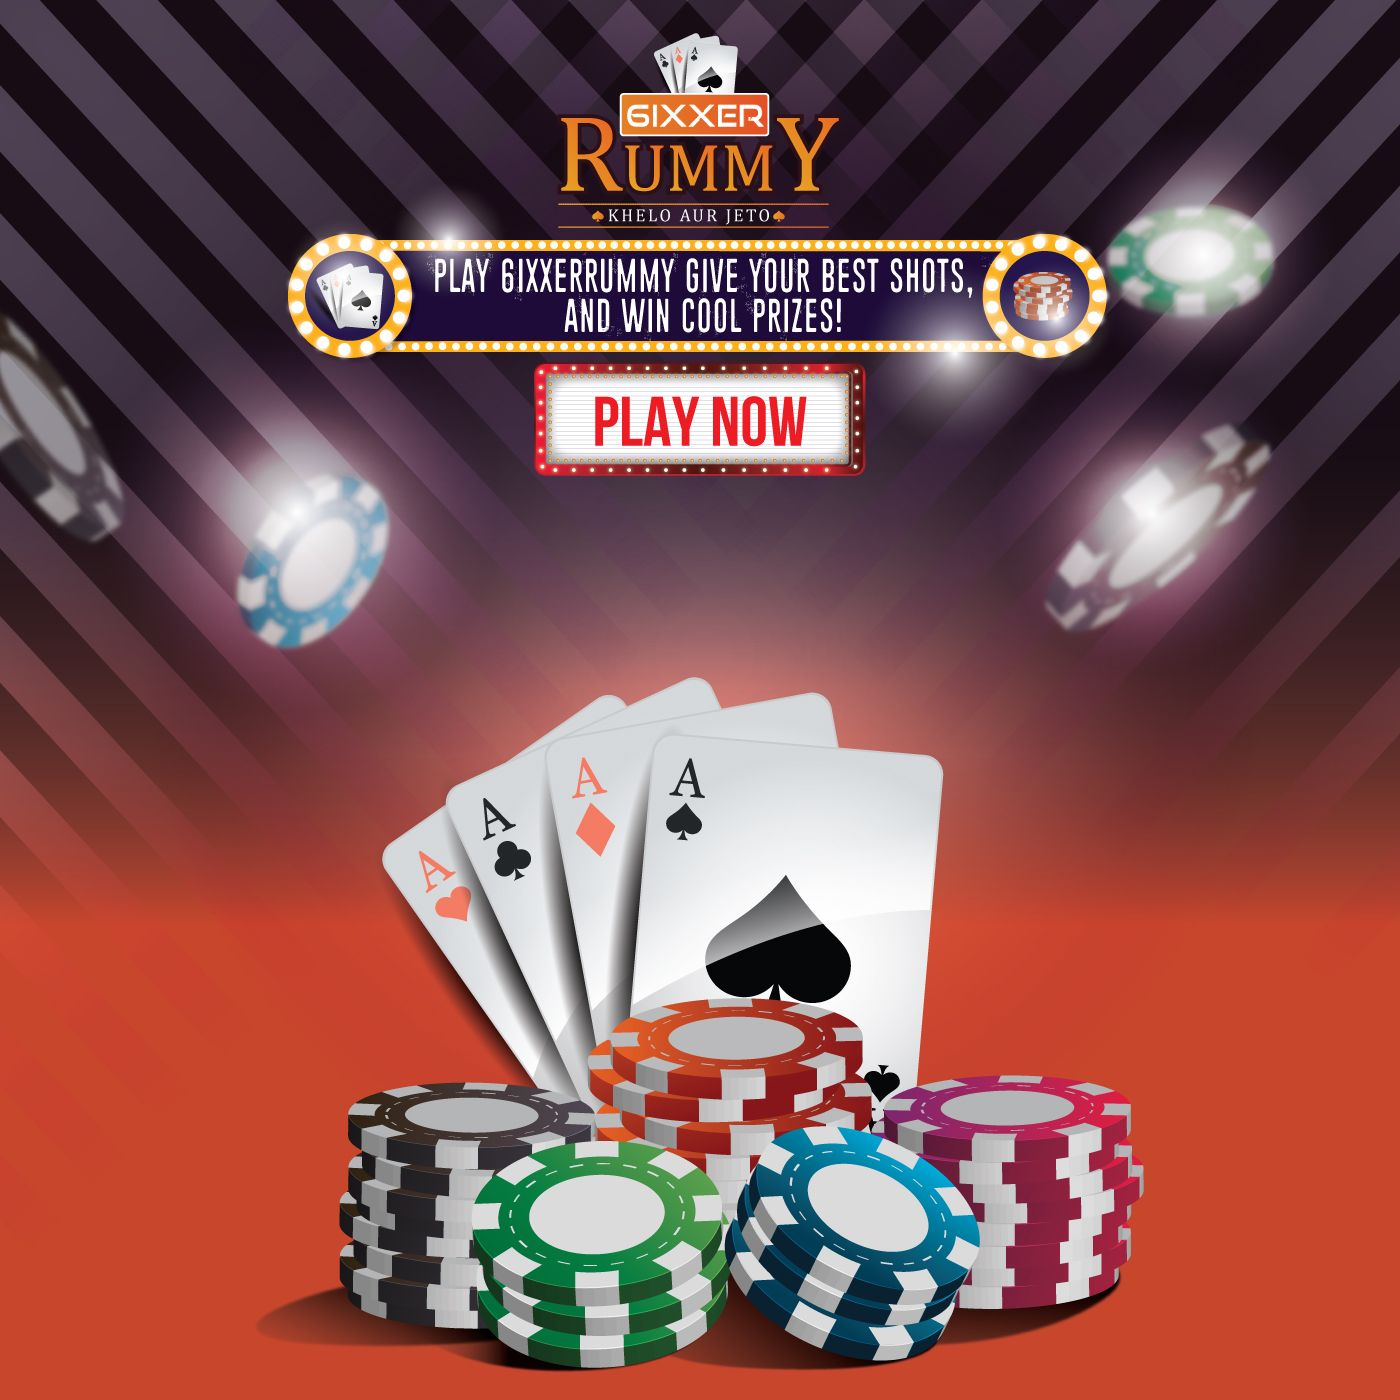 play now Rummy, Rummy game, Rummy card game